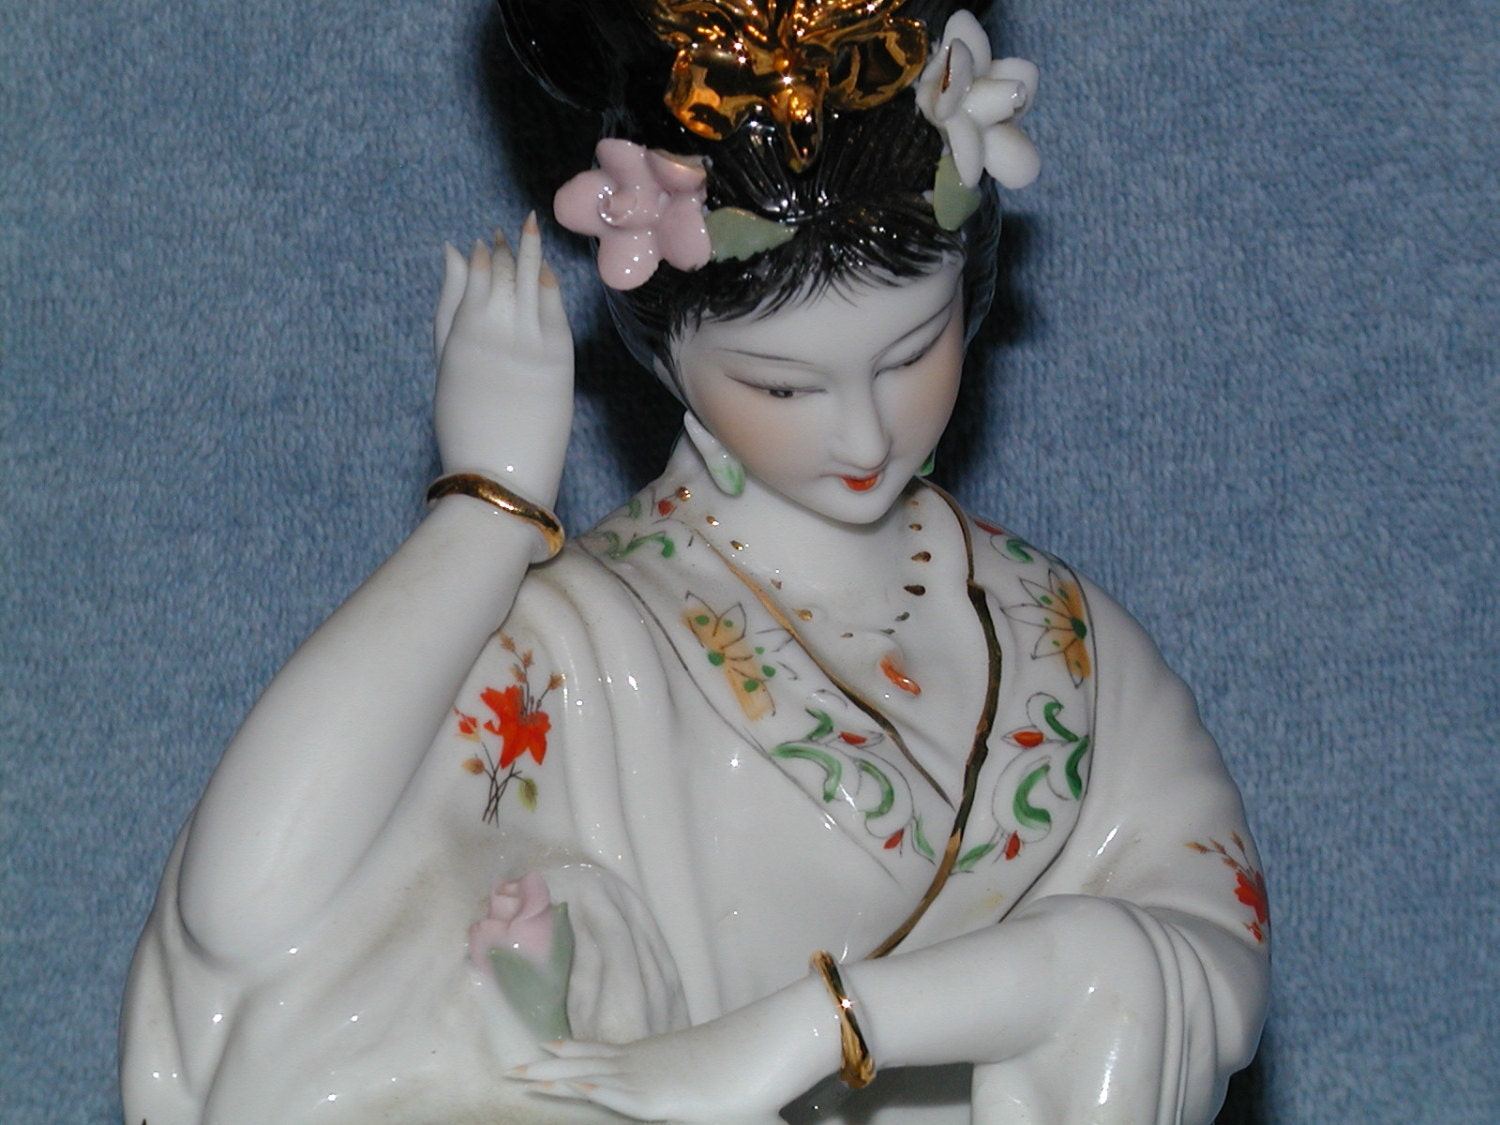 Porcelain Japanese Geisha Girl Figurine